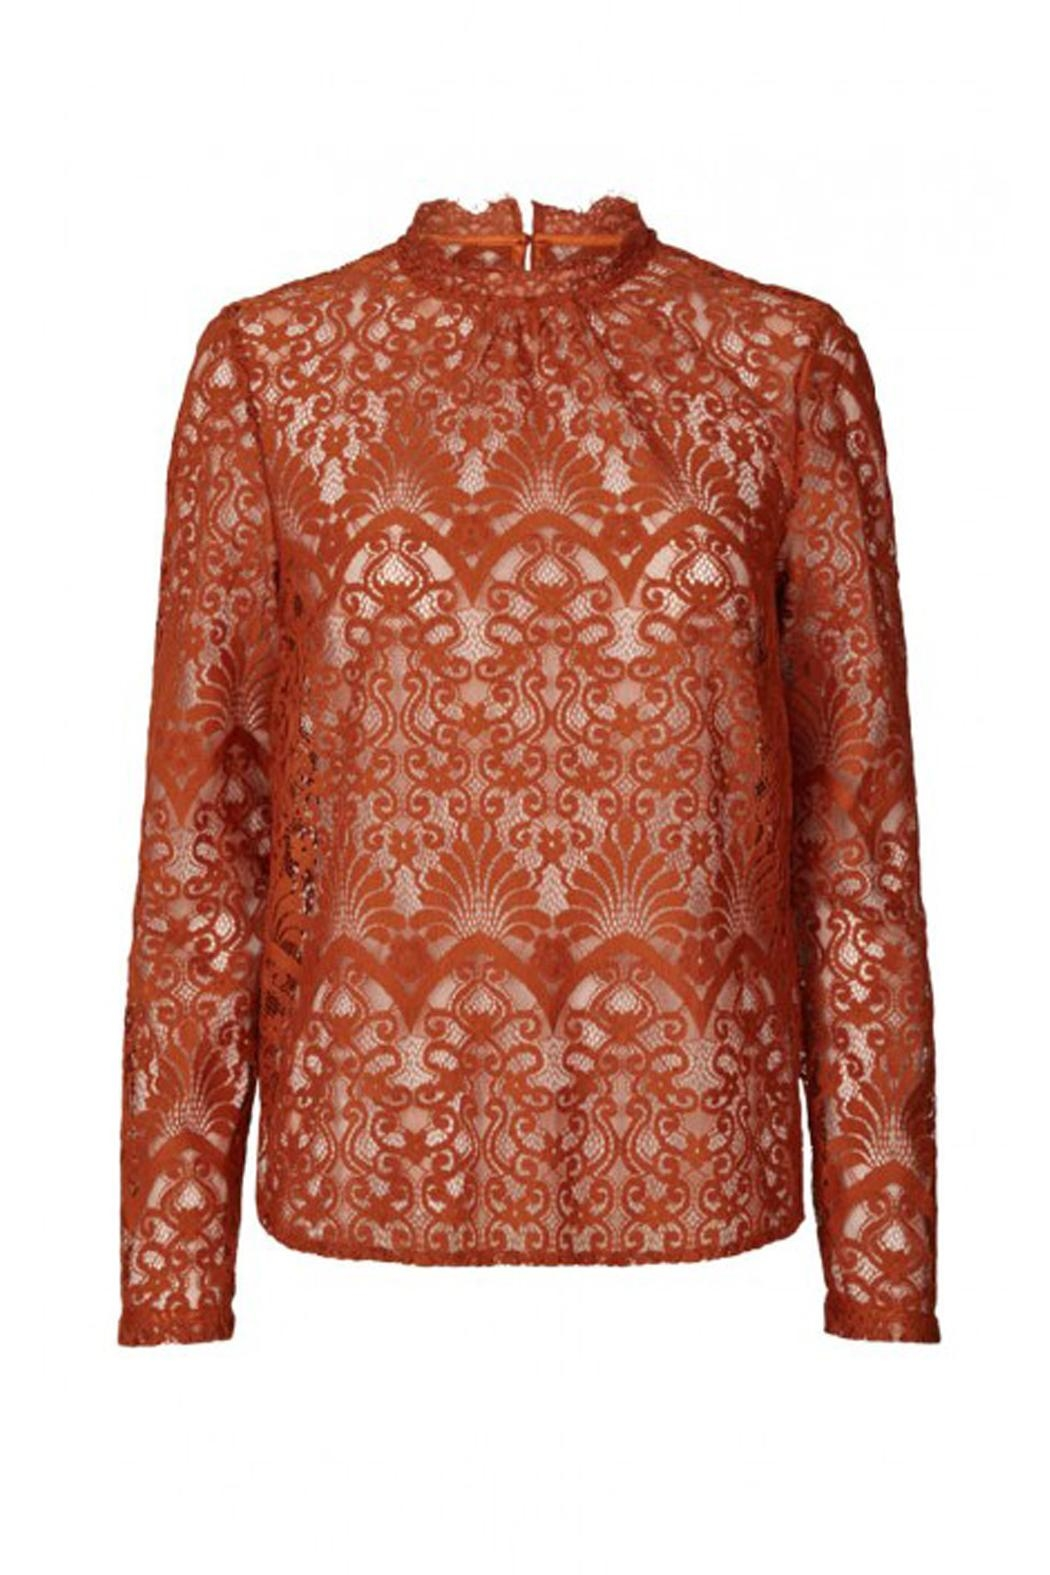 LOLLYS LAUNDRY Rust, Lace Top - Front Cropped Image